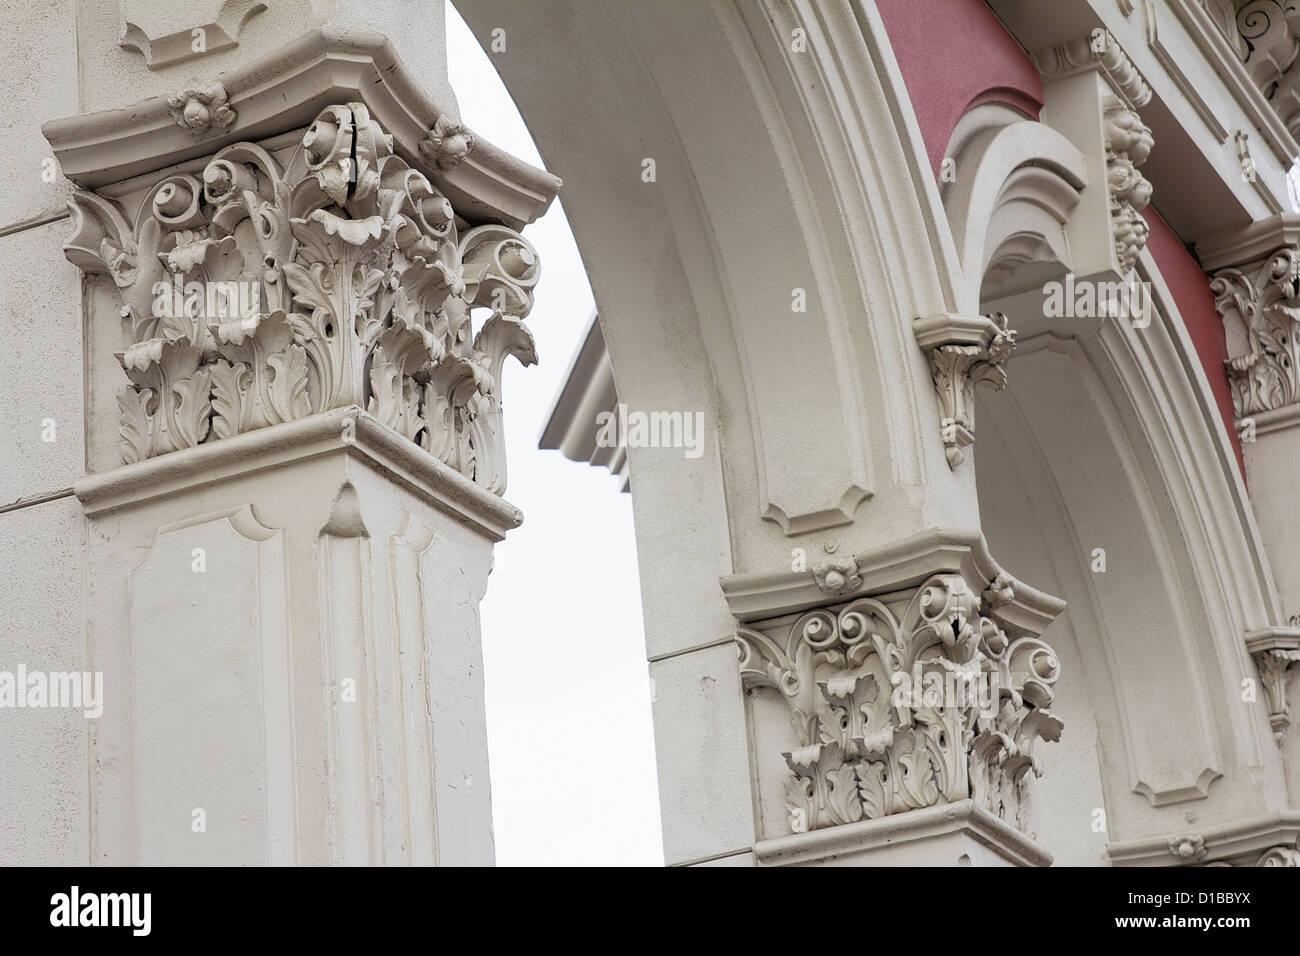 Renaissance Roman Architectural Column and Archway Historic Structure - Stock Image